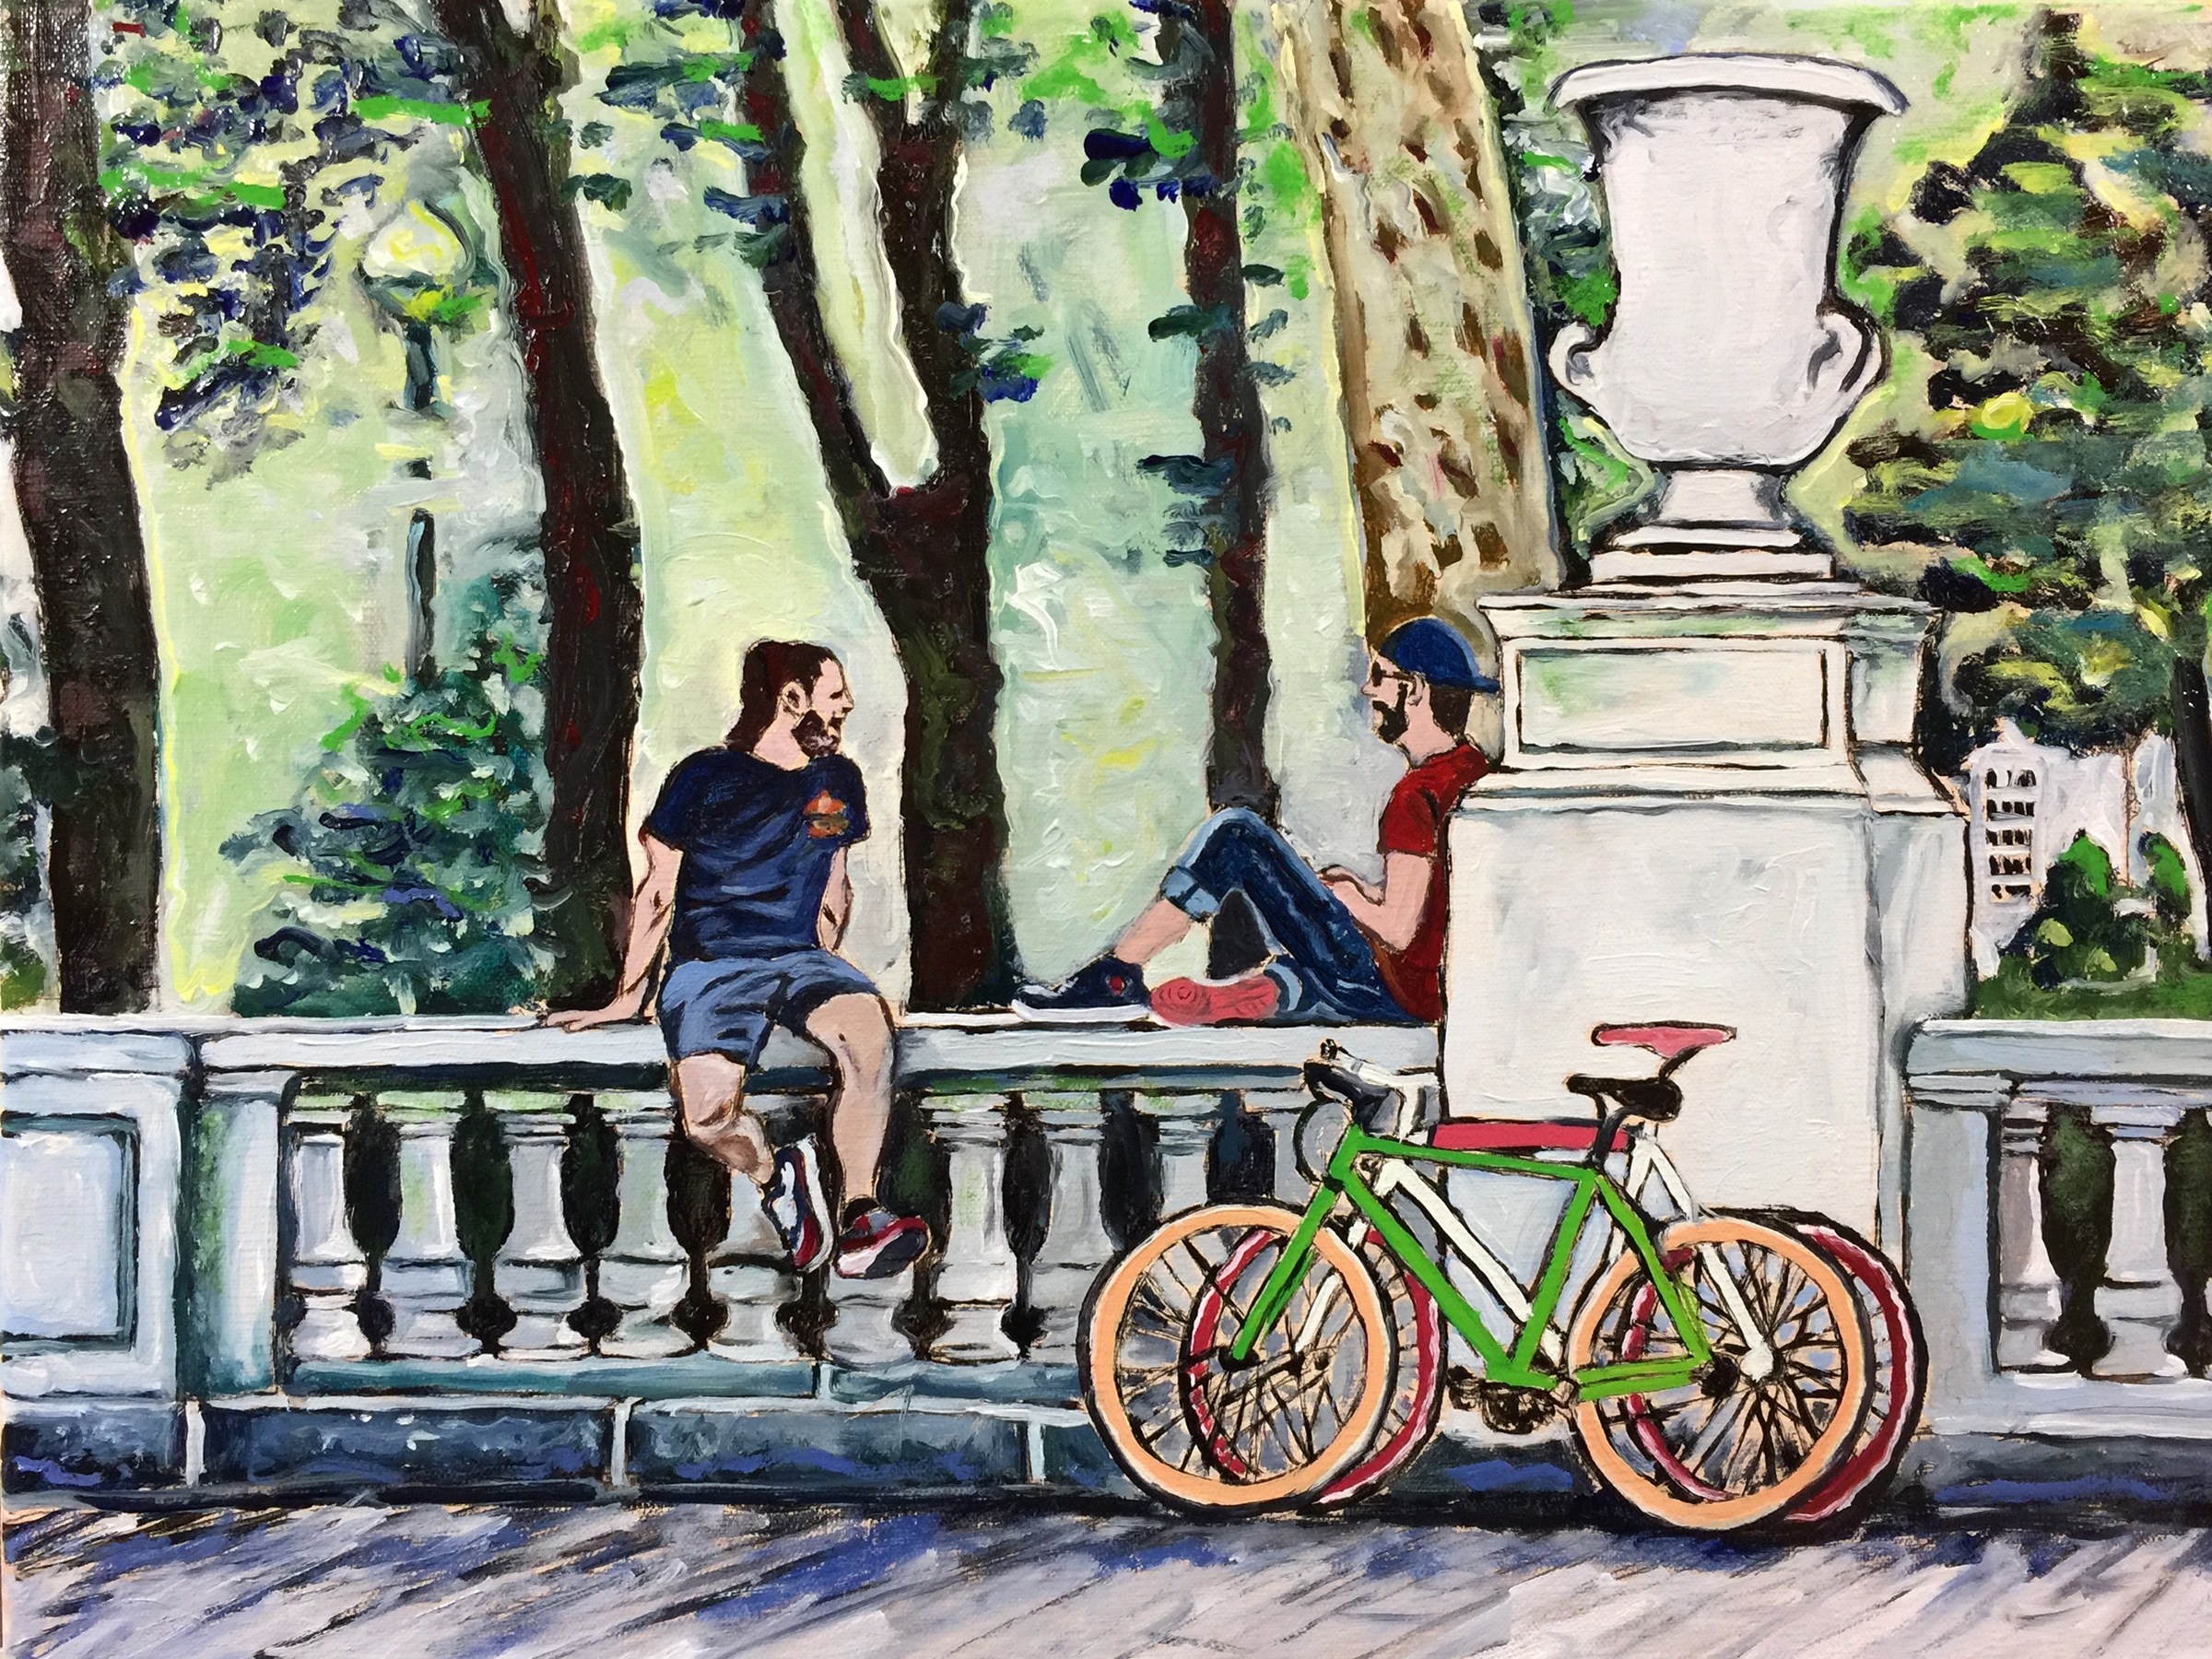 """Philadelphia Street Scene - Rittenhouse Square Park - """"Road Bikers Wallsitting at Rittenhouse Square"""" - 12x16 inches. Oil on Stretched Canvas."""